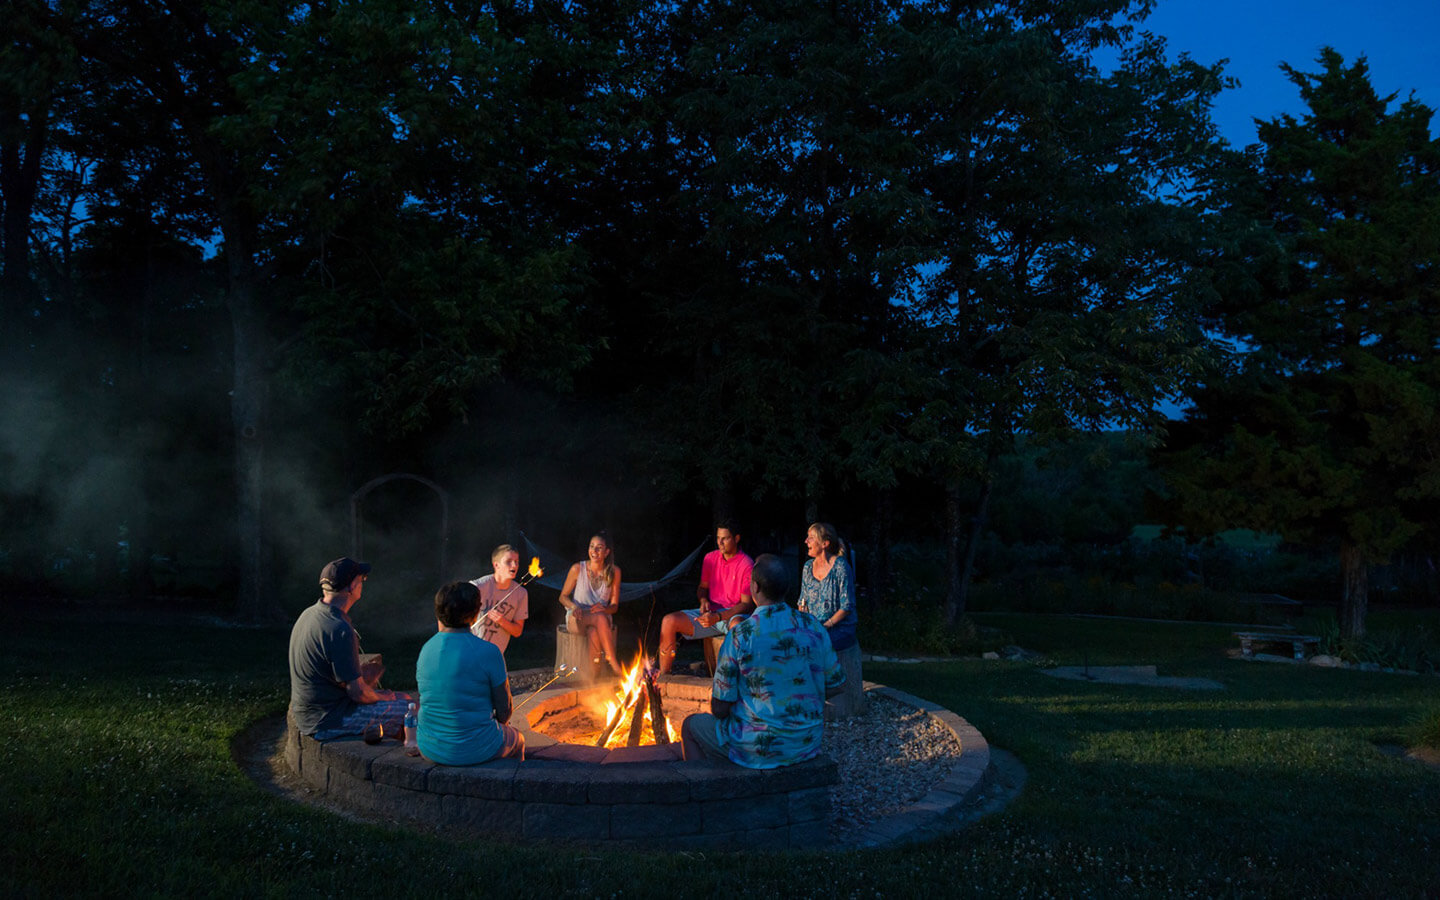 People sitting around the firepit